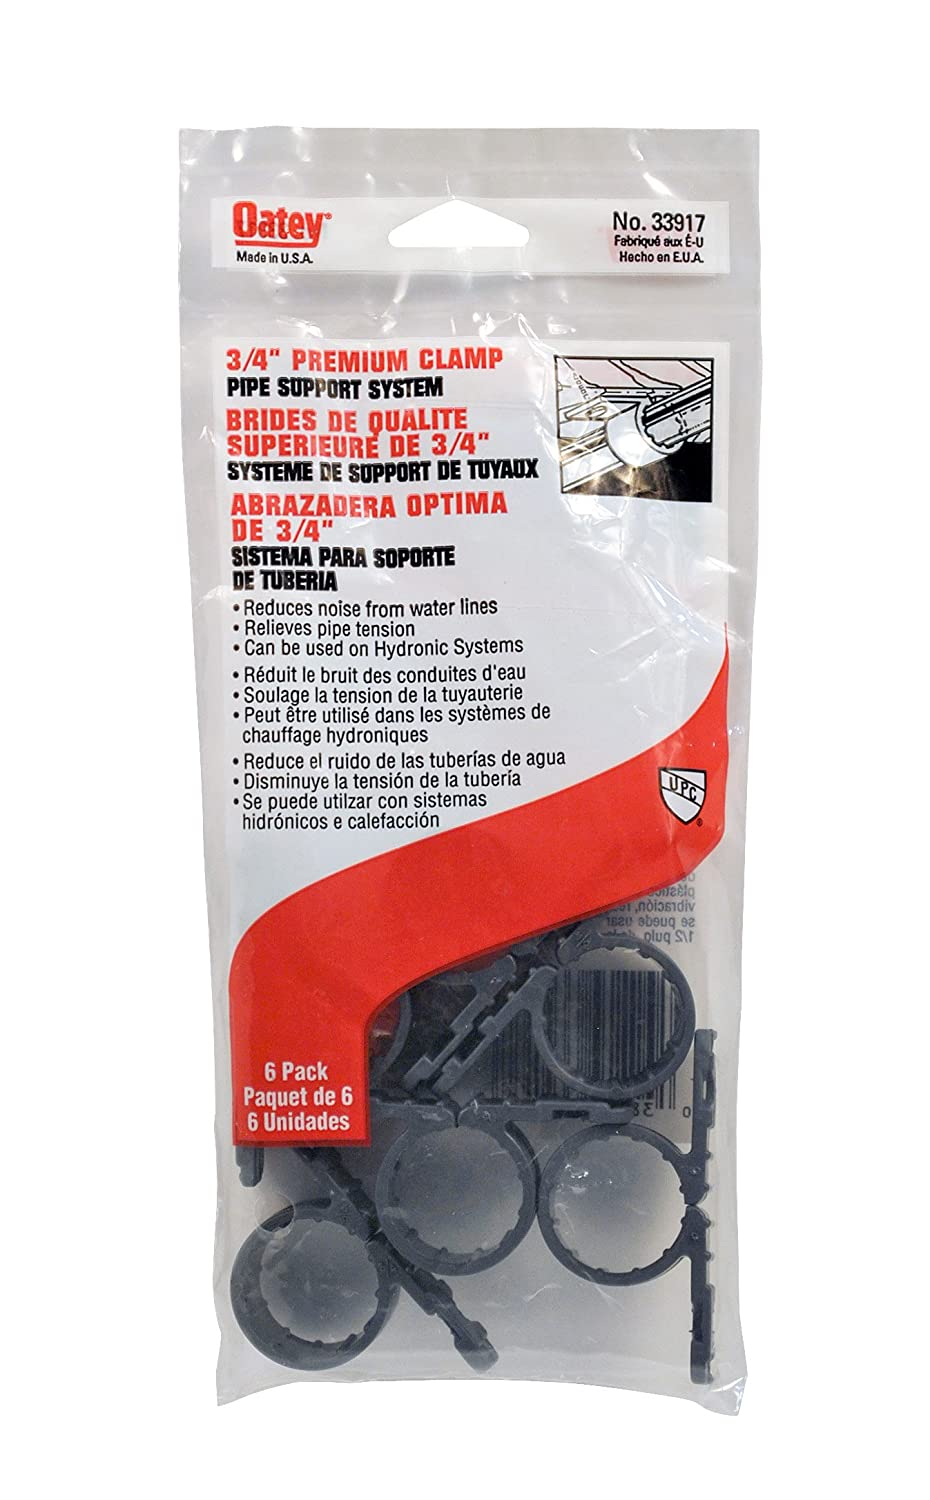 Oatey 33917 Standard Pipe Clamp (6 in Polybag), Gray, 3/4-Inch